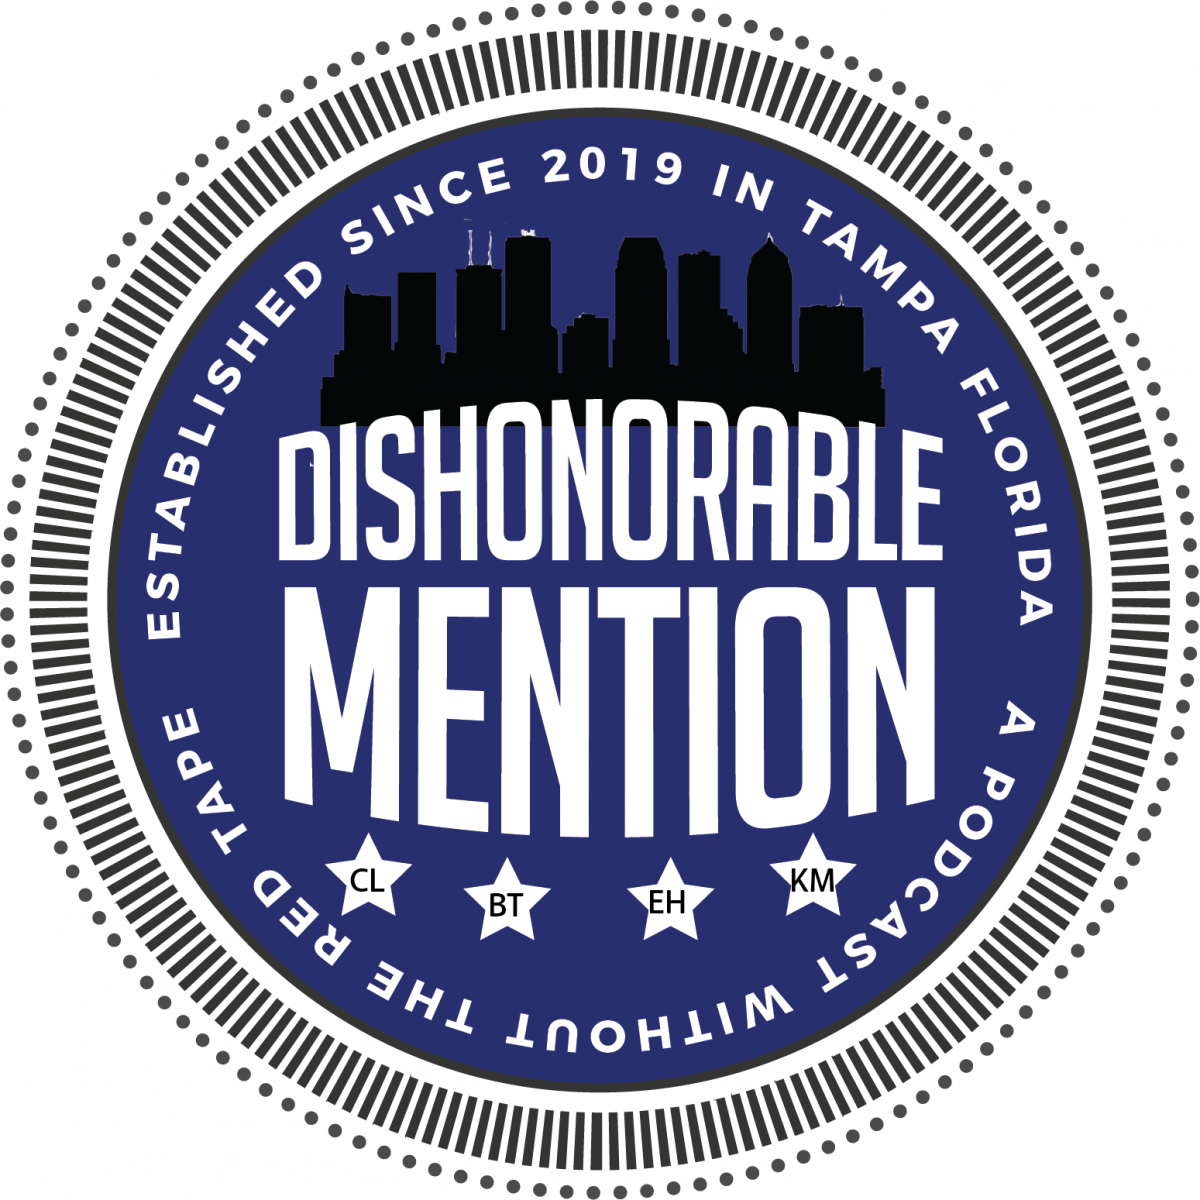 Dishonorable Mention Episode 25: Media Literacy, Conspiracy Theories, and Polititainment